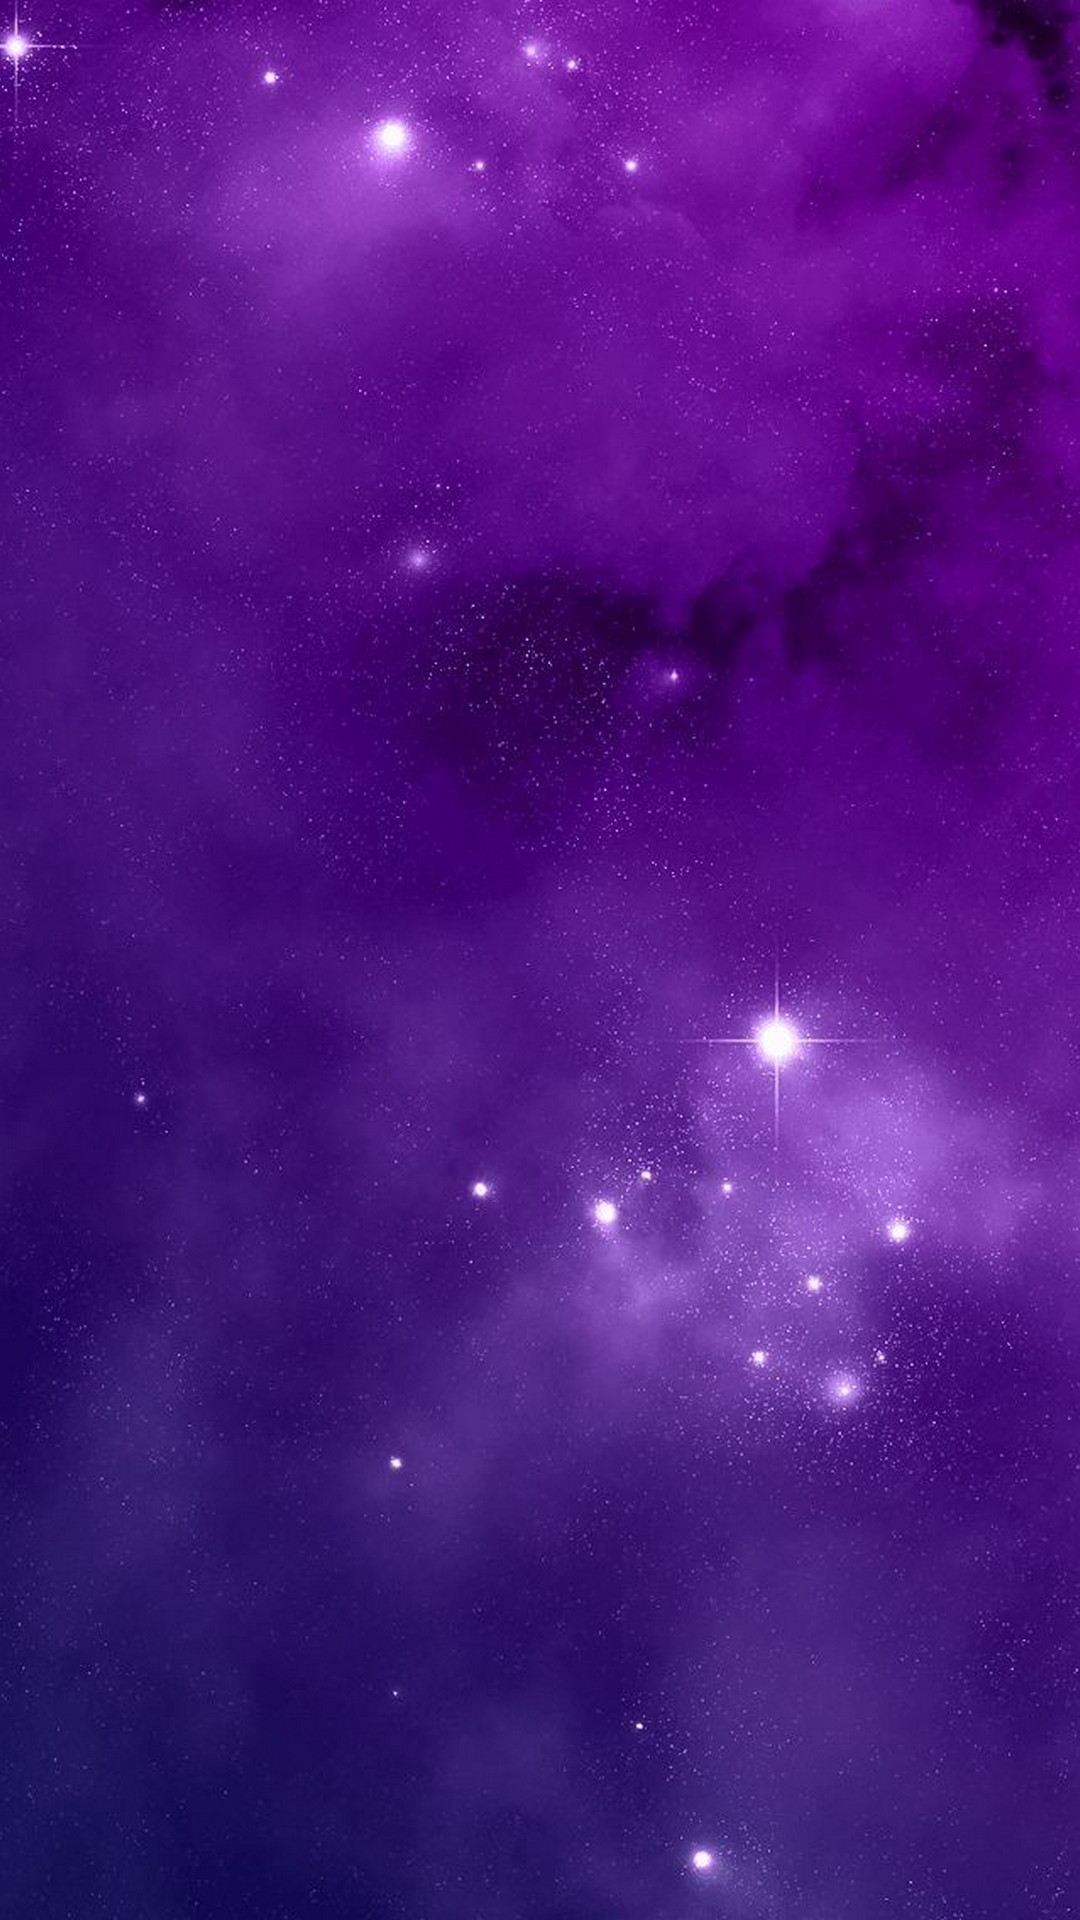 Wallpaper Cute Purple Android with high-resolution 1080x1920 pixel. You can use this wallpaper for your Android backgrounds, Tablet, Samsung Screensavers, Mobile Phone Lock Screen and another Smartphones device